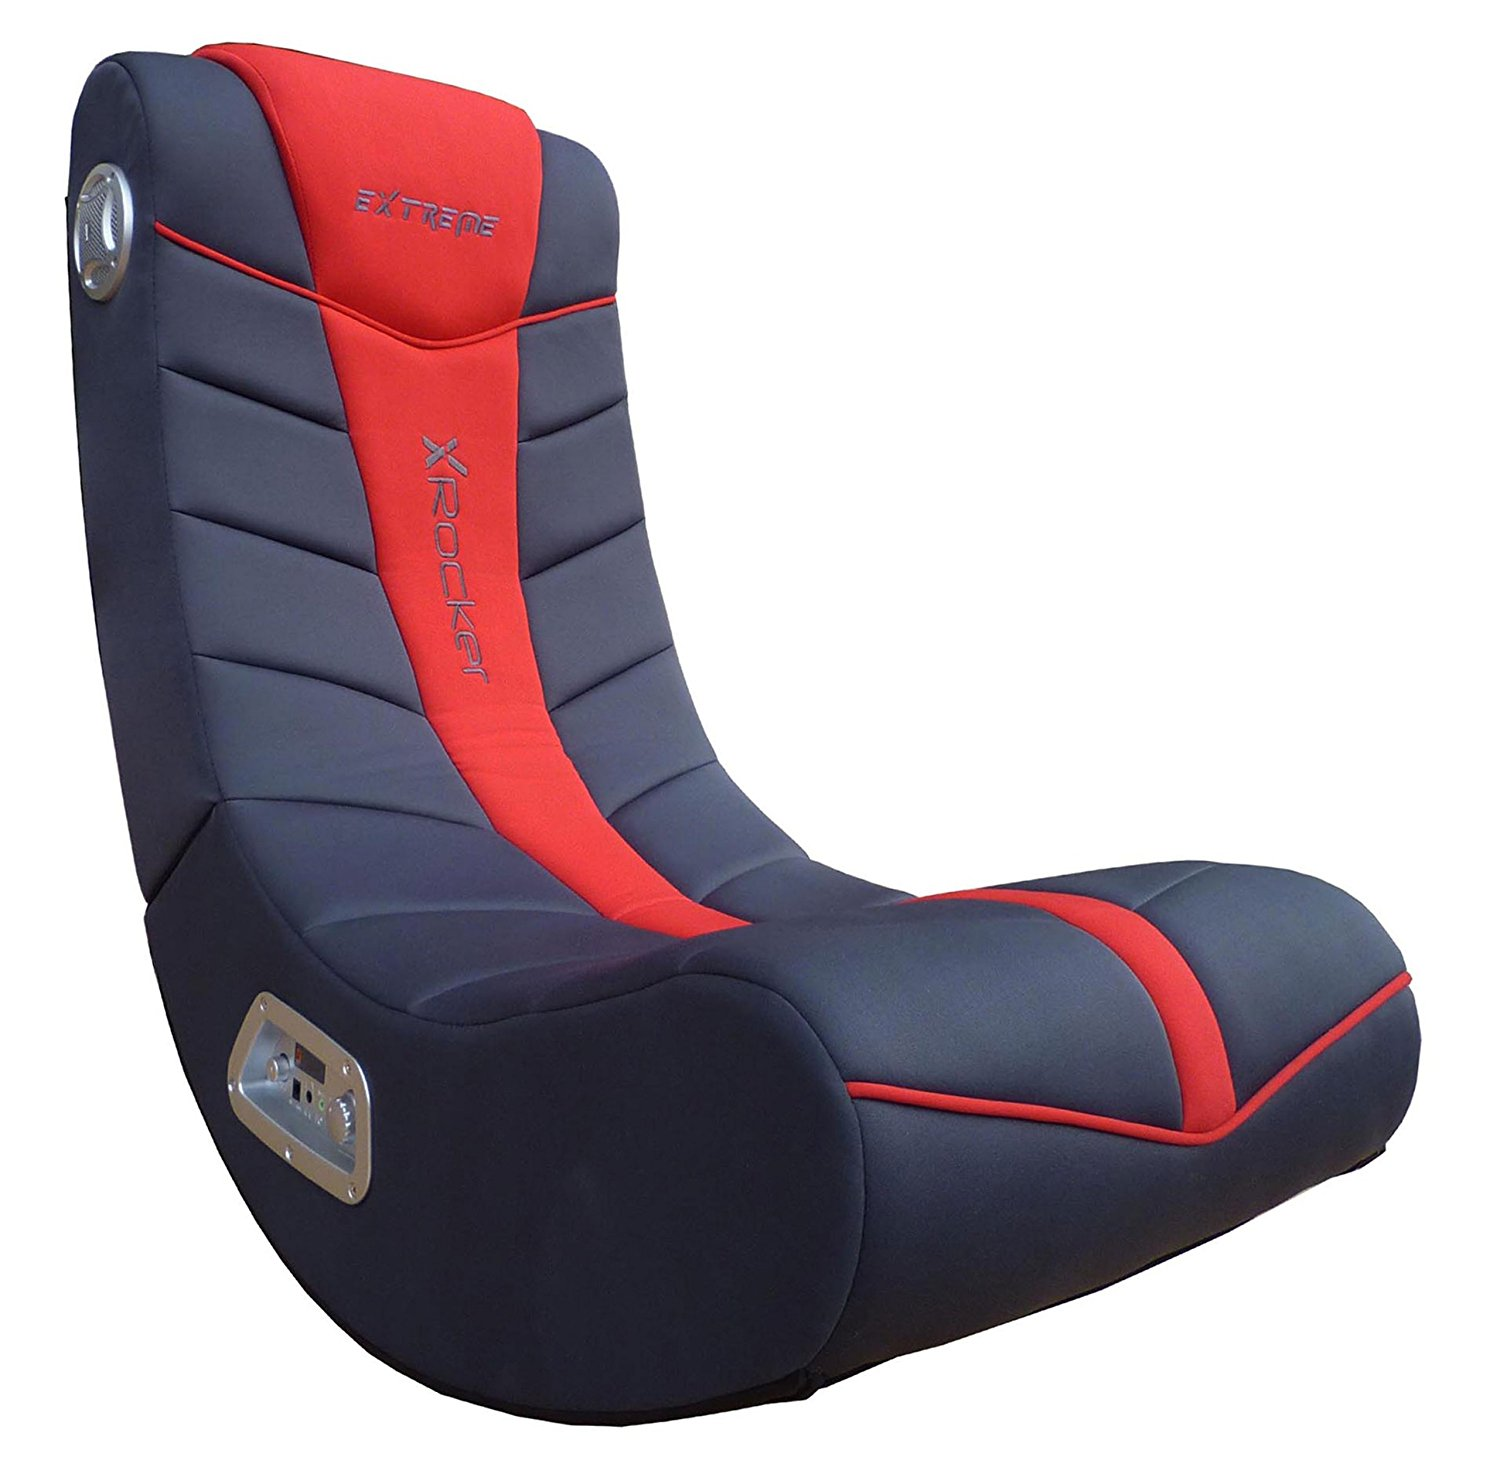 Video Game Chairs 10 Cheap Gaming Chairs Under 100 Gaming Chair Pro